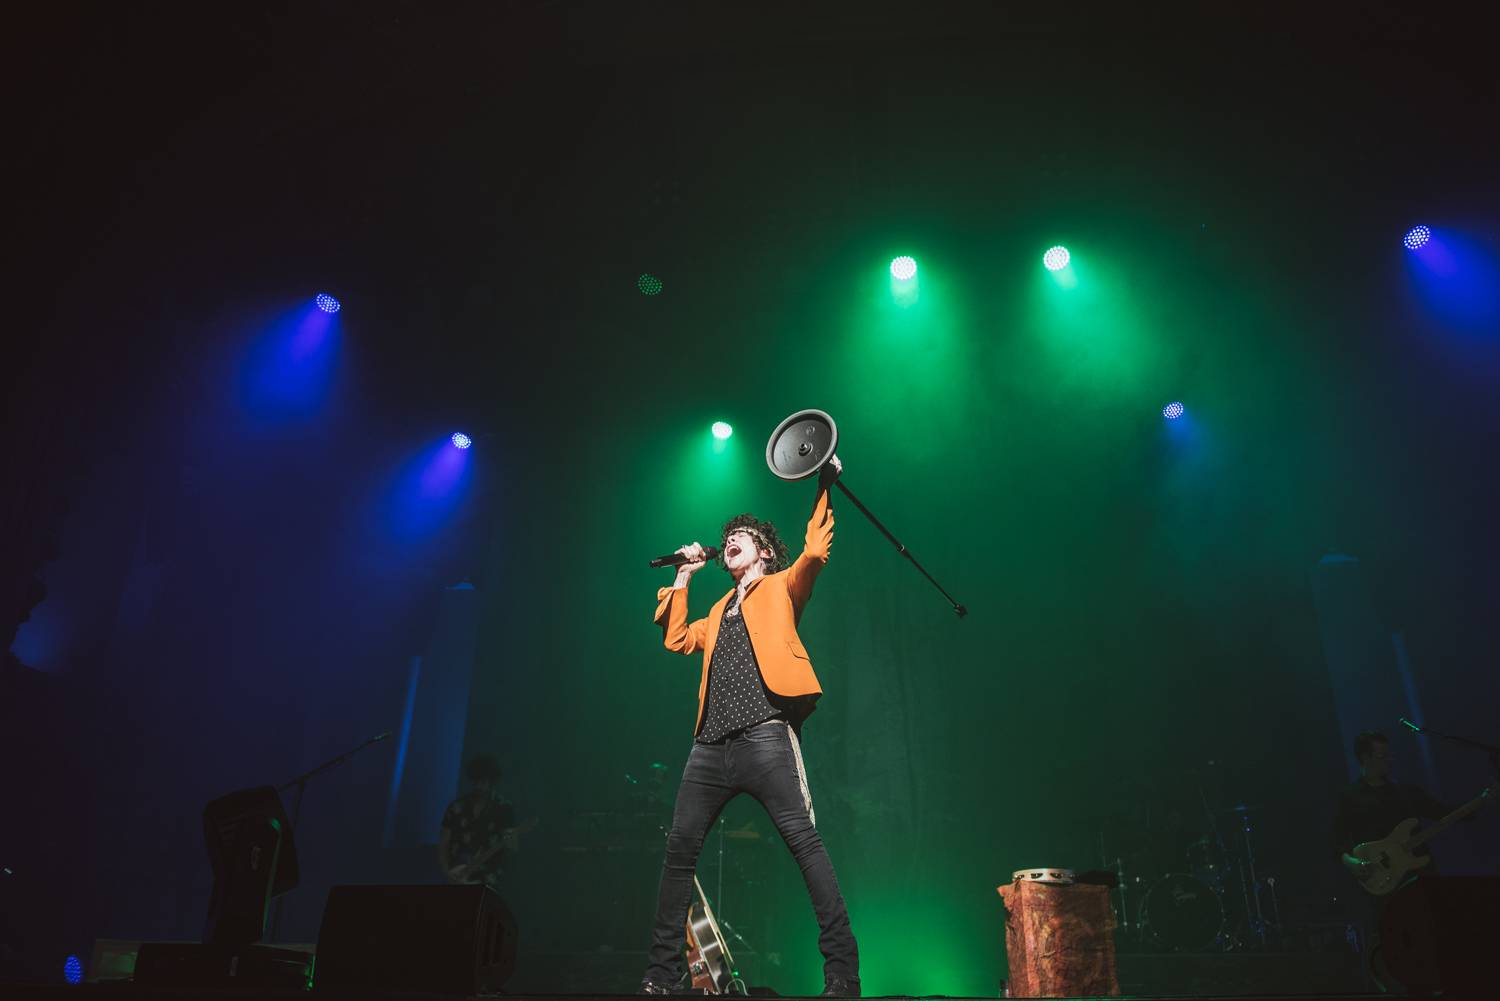 LP at the Orpheum Theater, Vancouver, Apr 23 2019. Pavel Boiko photo.